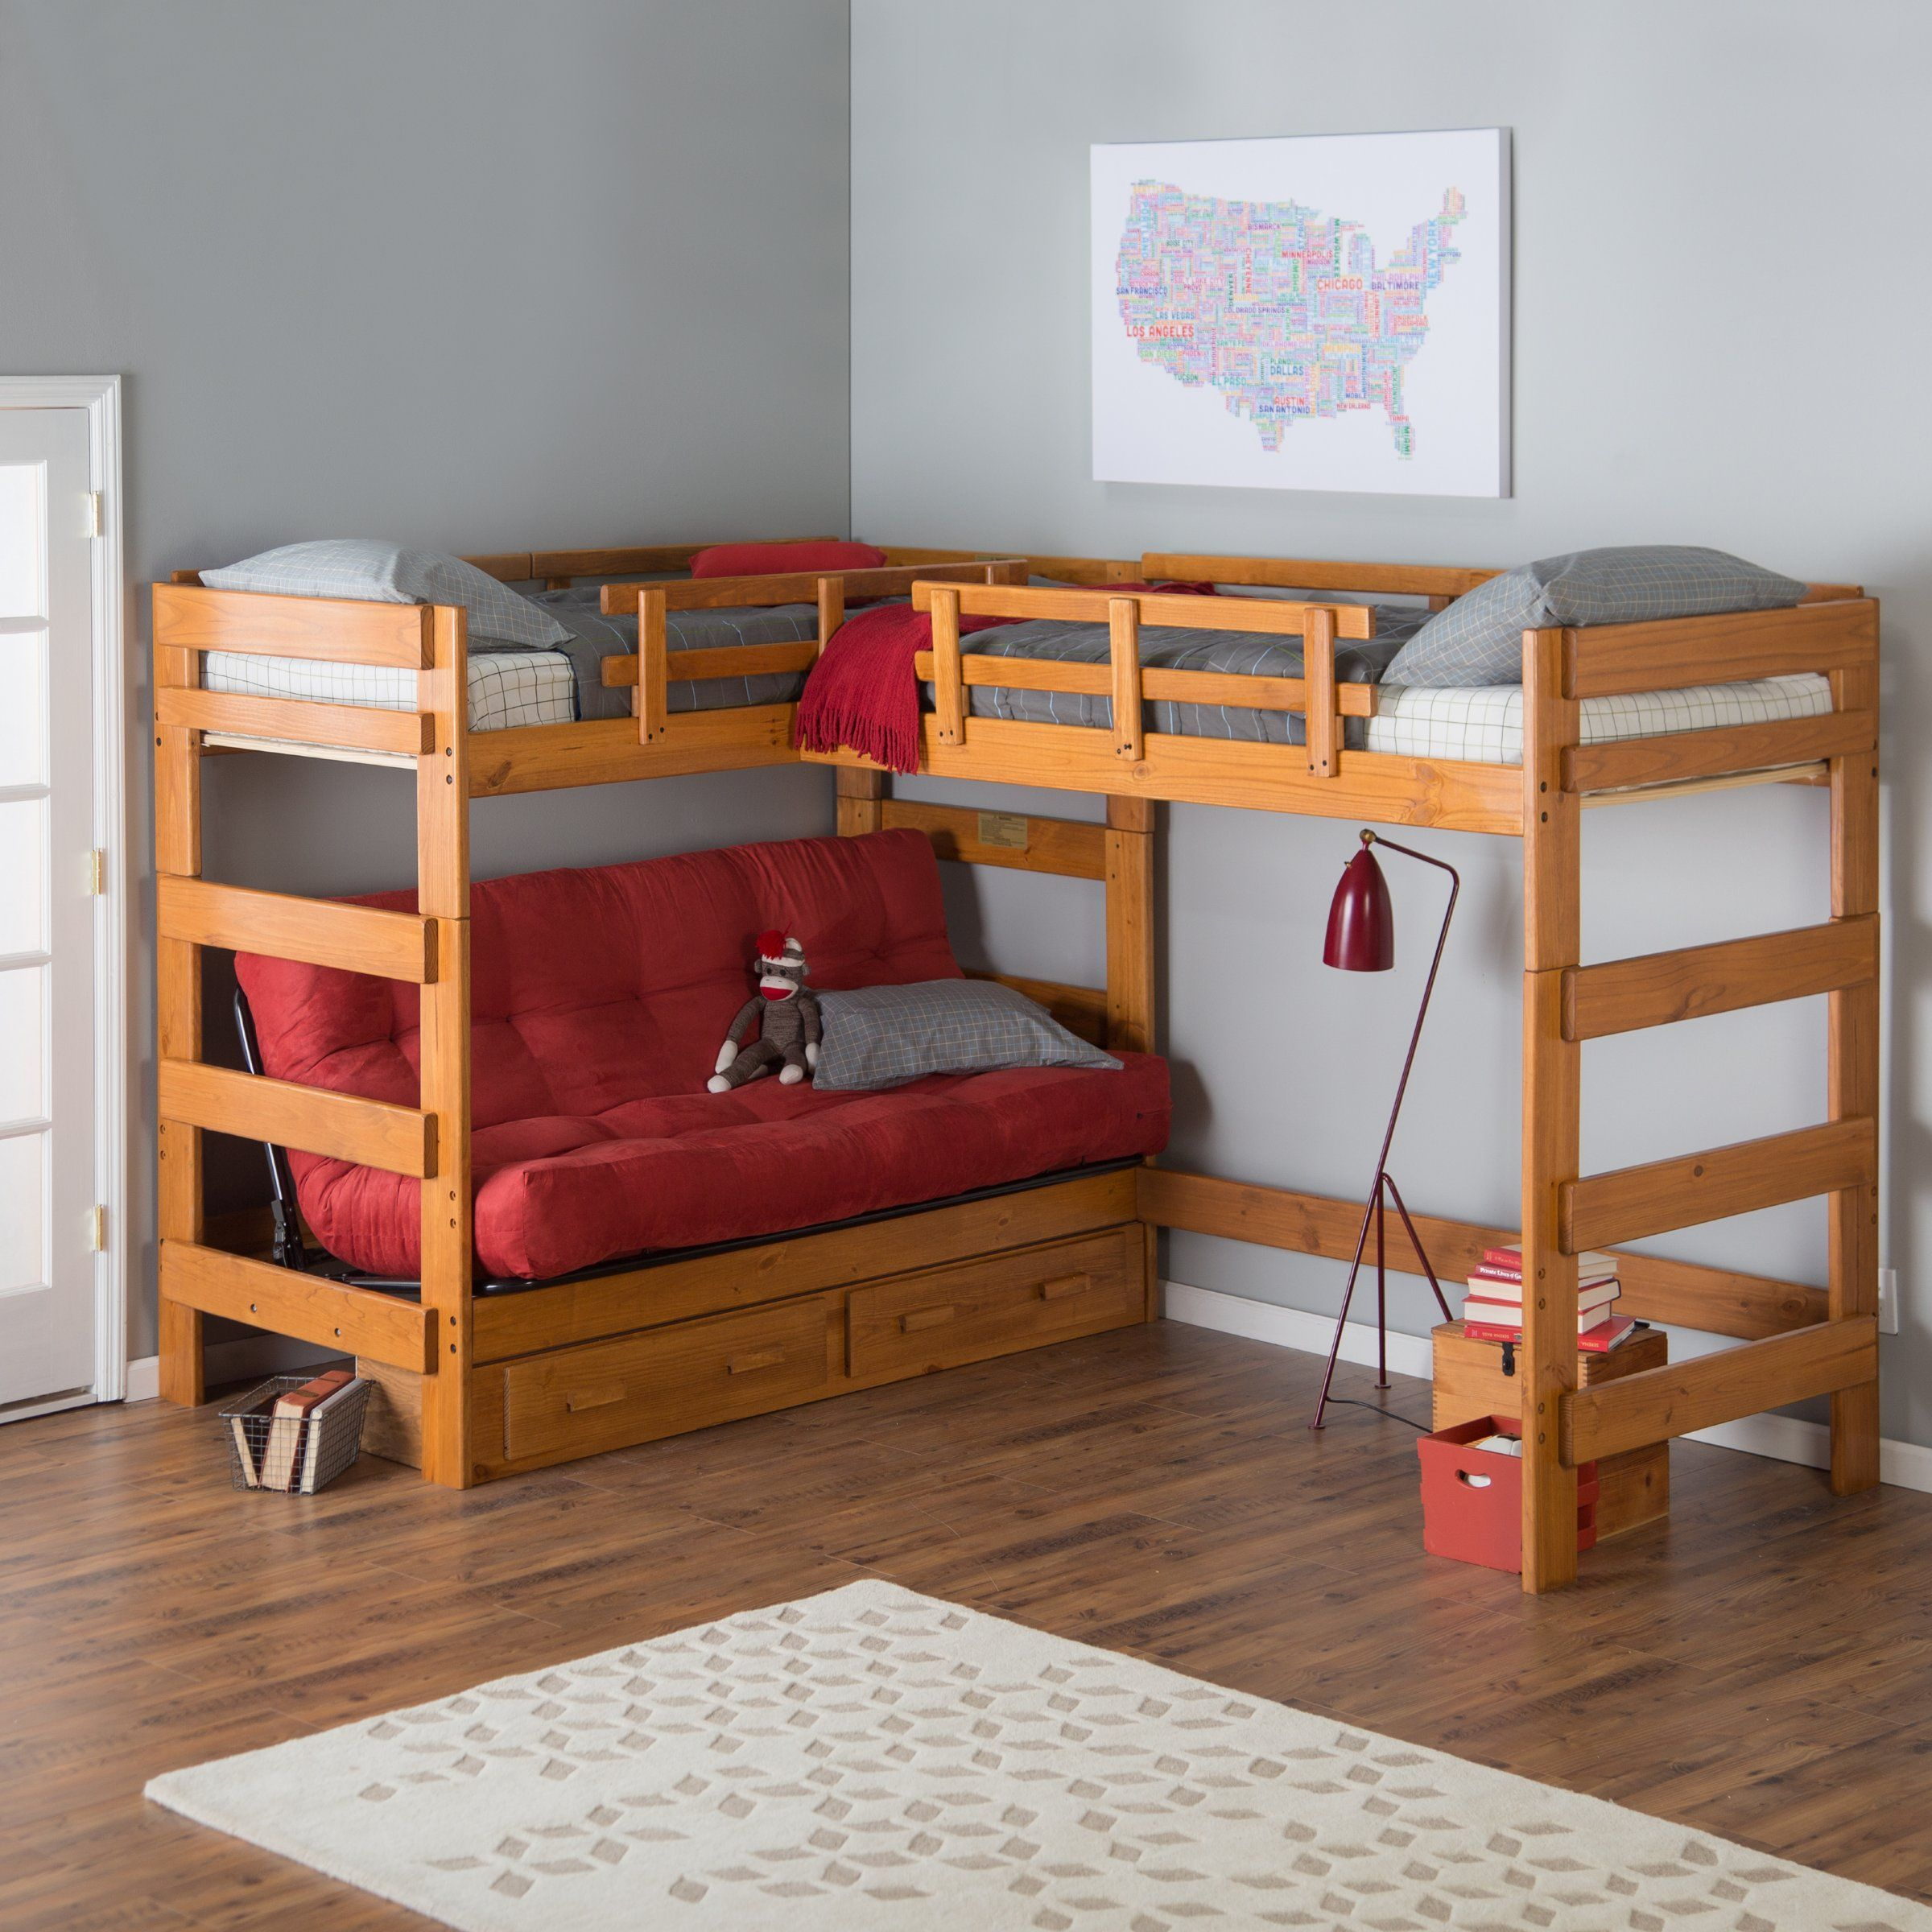 Woodcrest heartland futon bunk bed with extra loft bed for Futon kids room